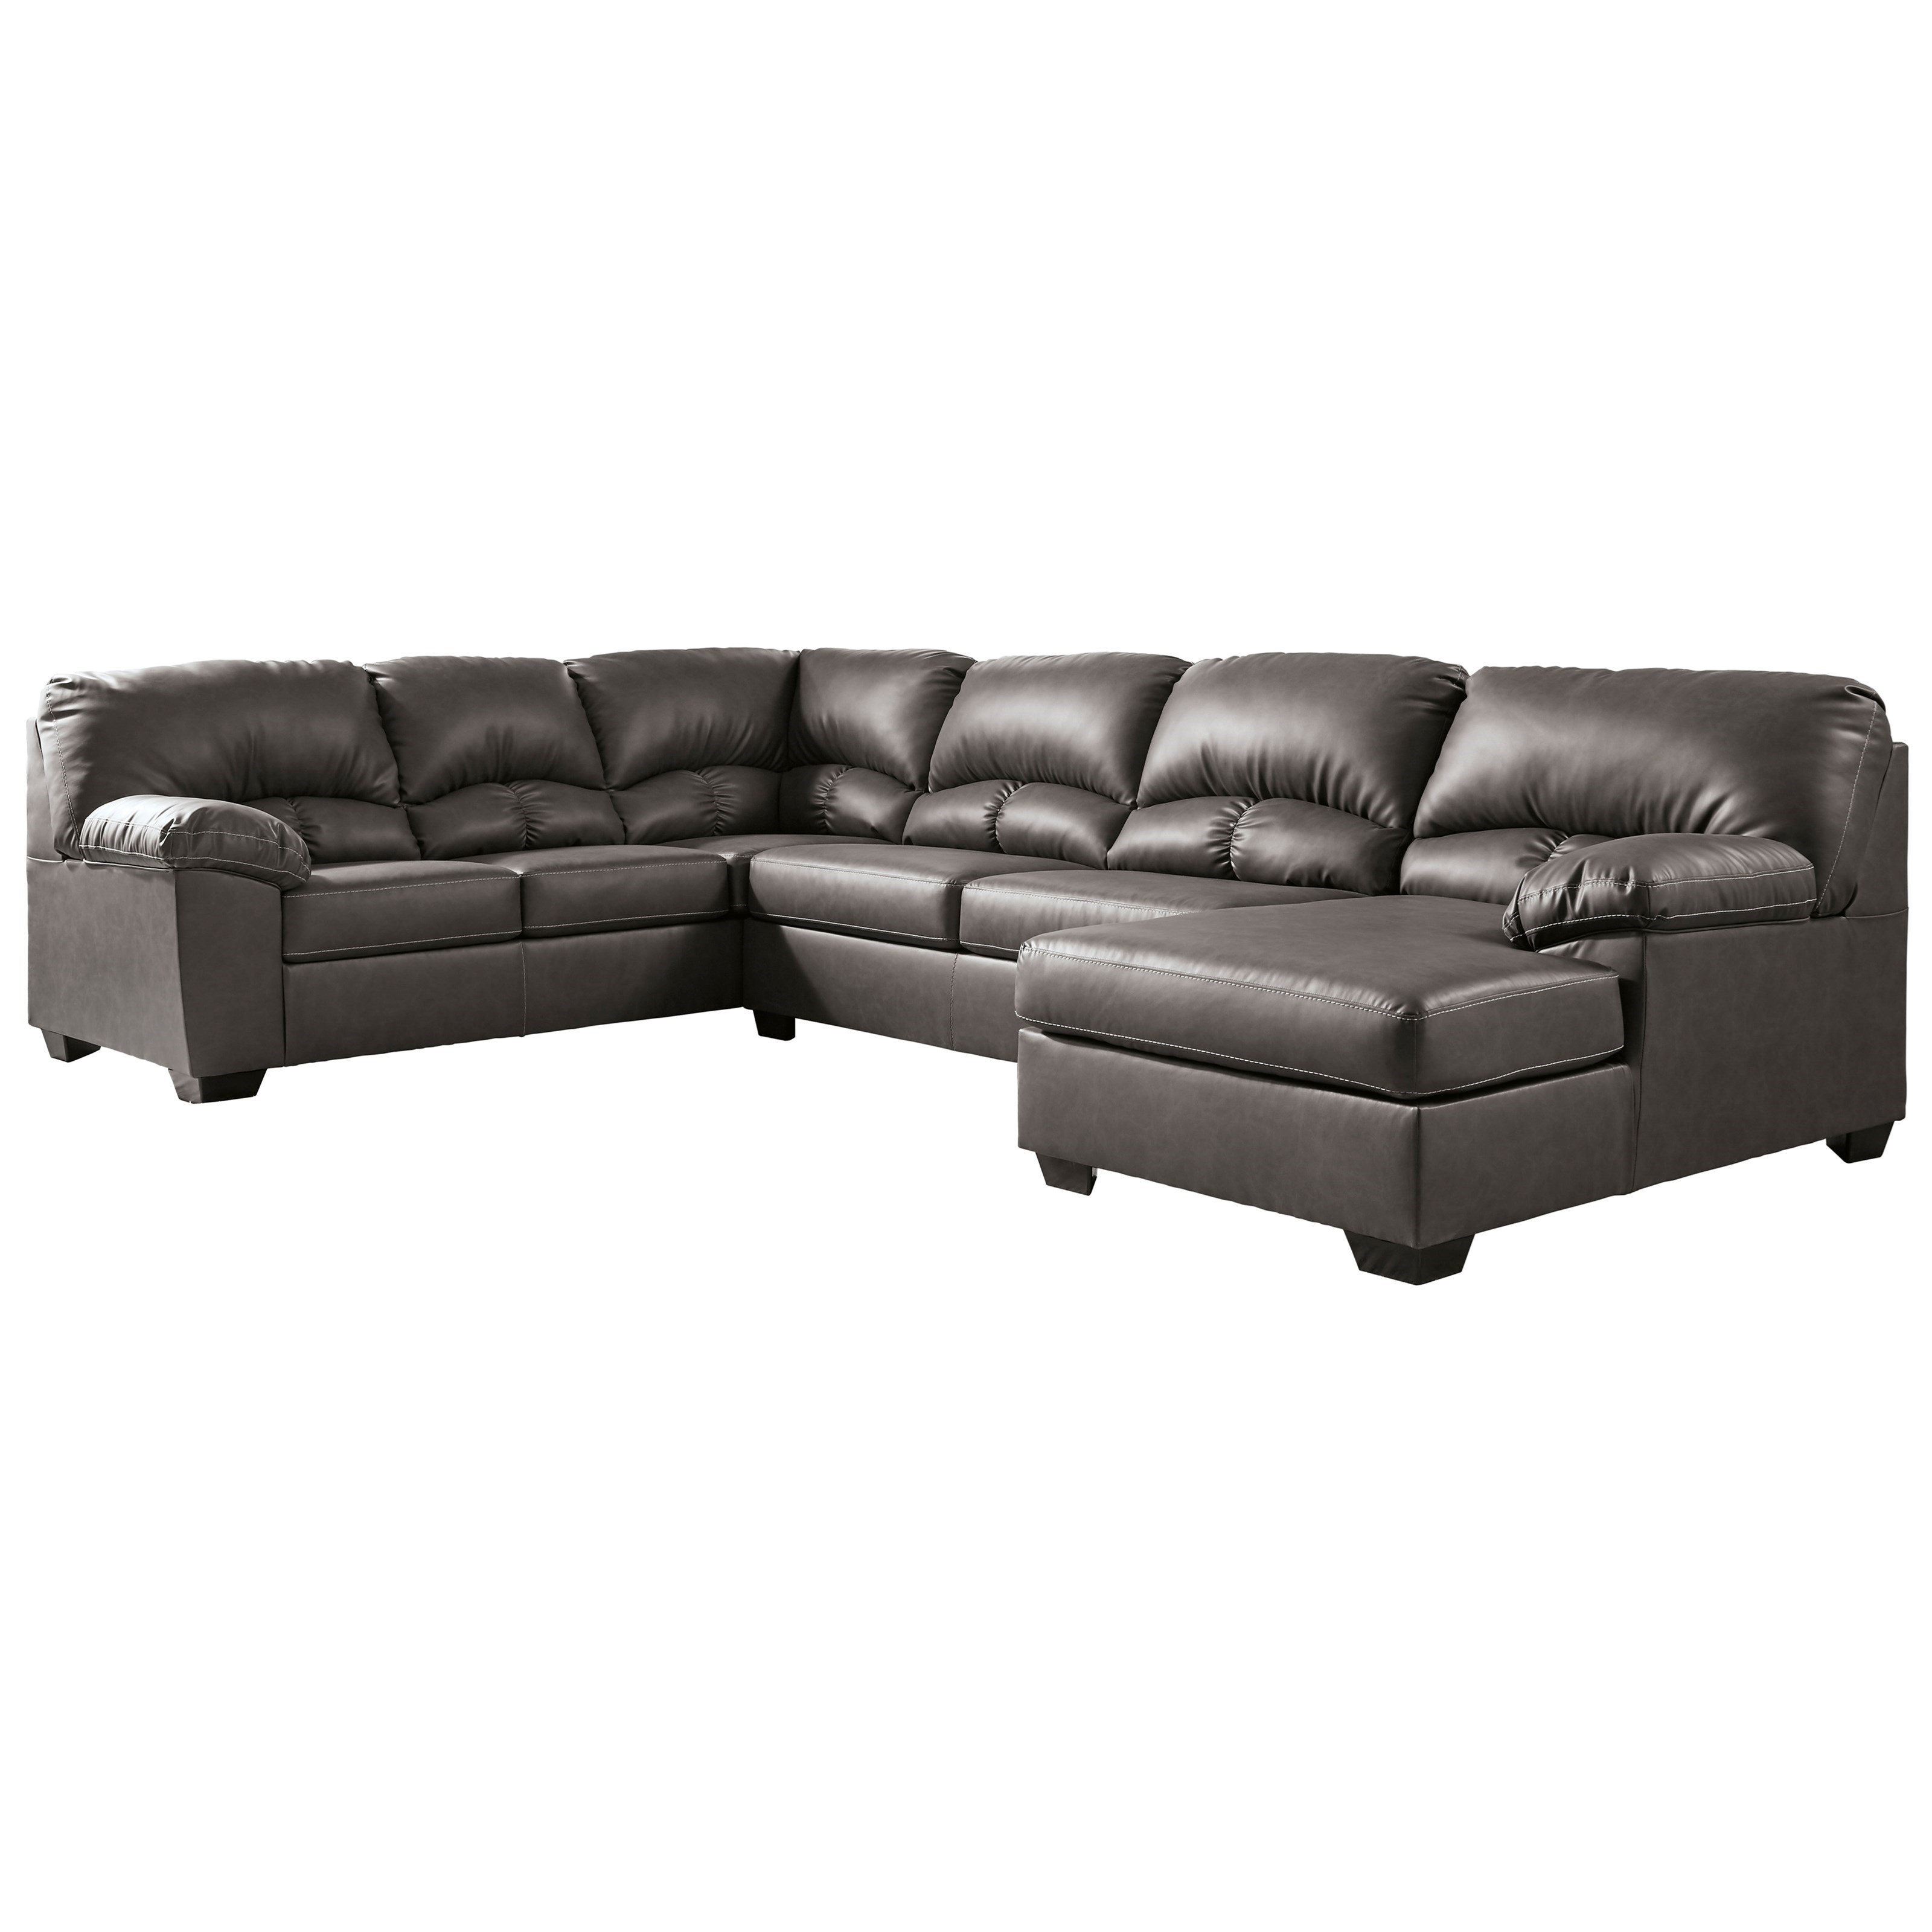 Aberton 3-Piece Sectional with Chaise by Benchcraft at Catalog Outlet